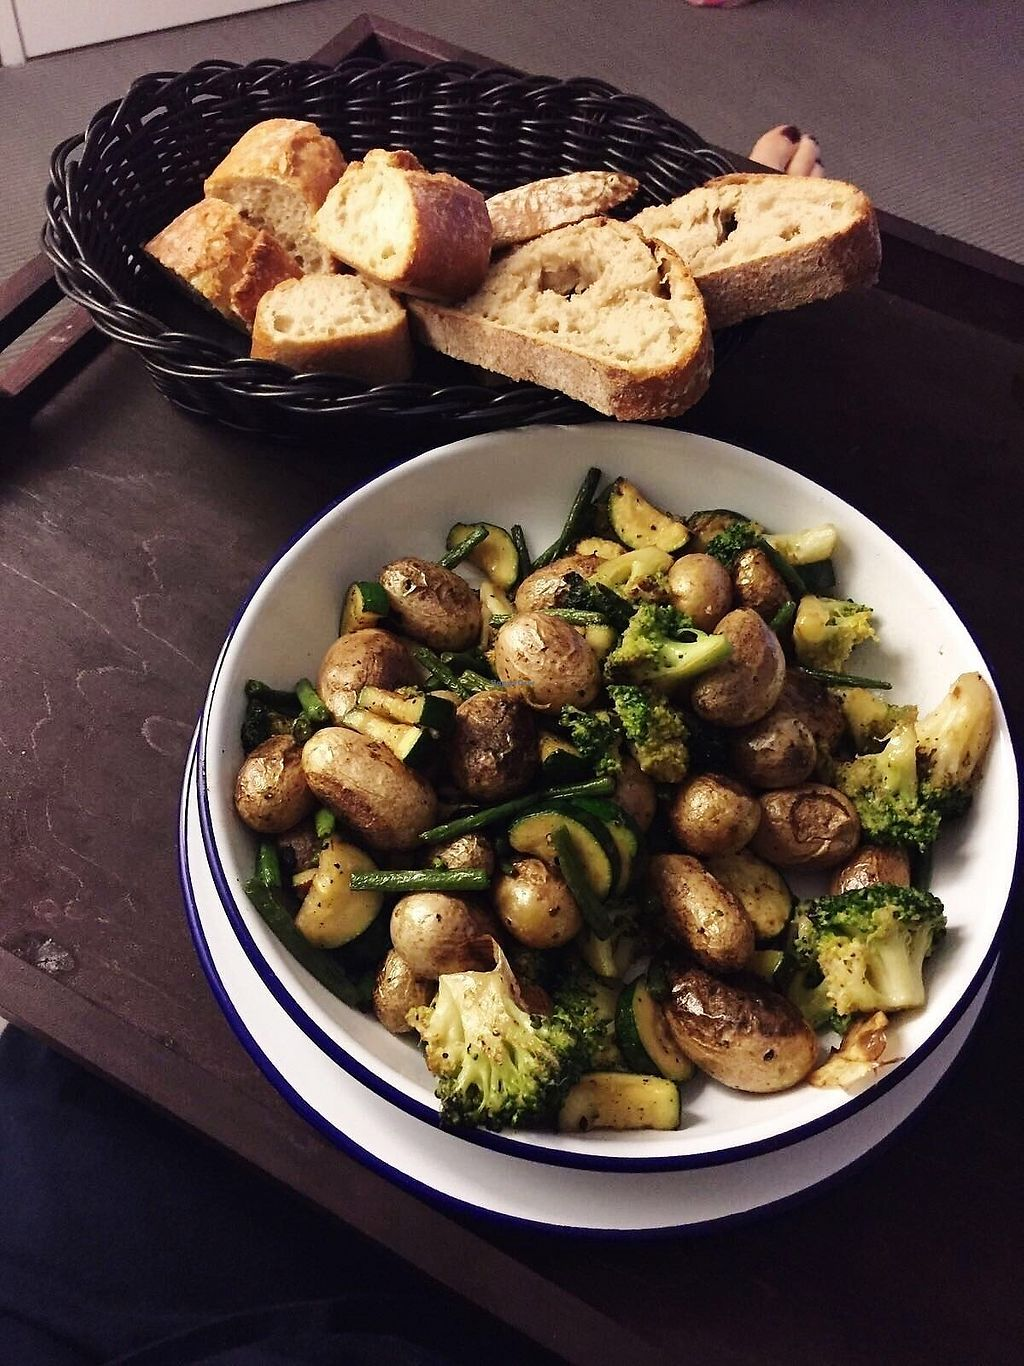 """Photo of Kube Hotel Paris  by <a href=""""/members/profile/TARAMCDONALD"""">TARAMCDONALD</a> <br/>Freshly made bead and roasted veggie platter <br/> November 30, 2017  - <a href='/contact/abuse/image/106293/330906'>Report</a>"""